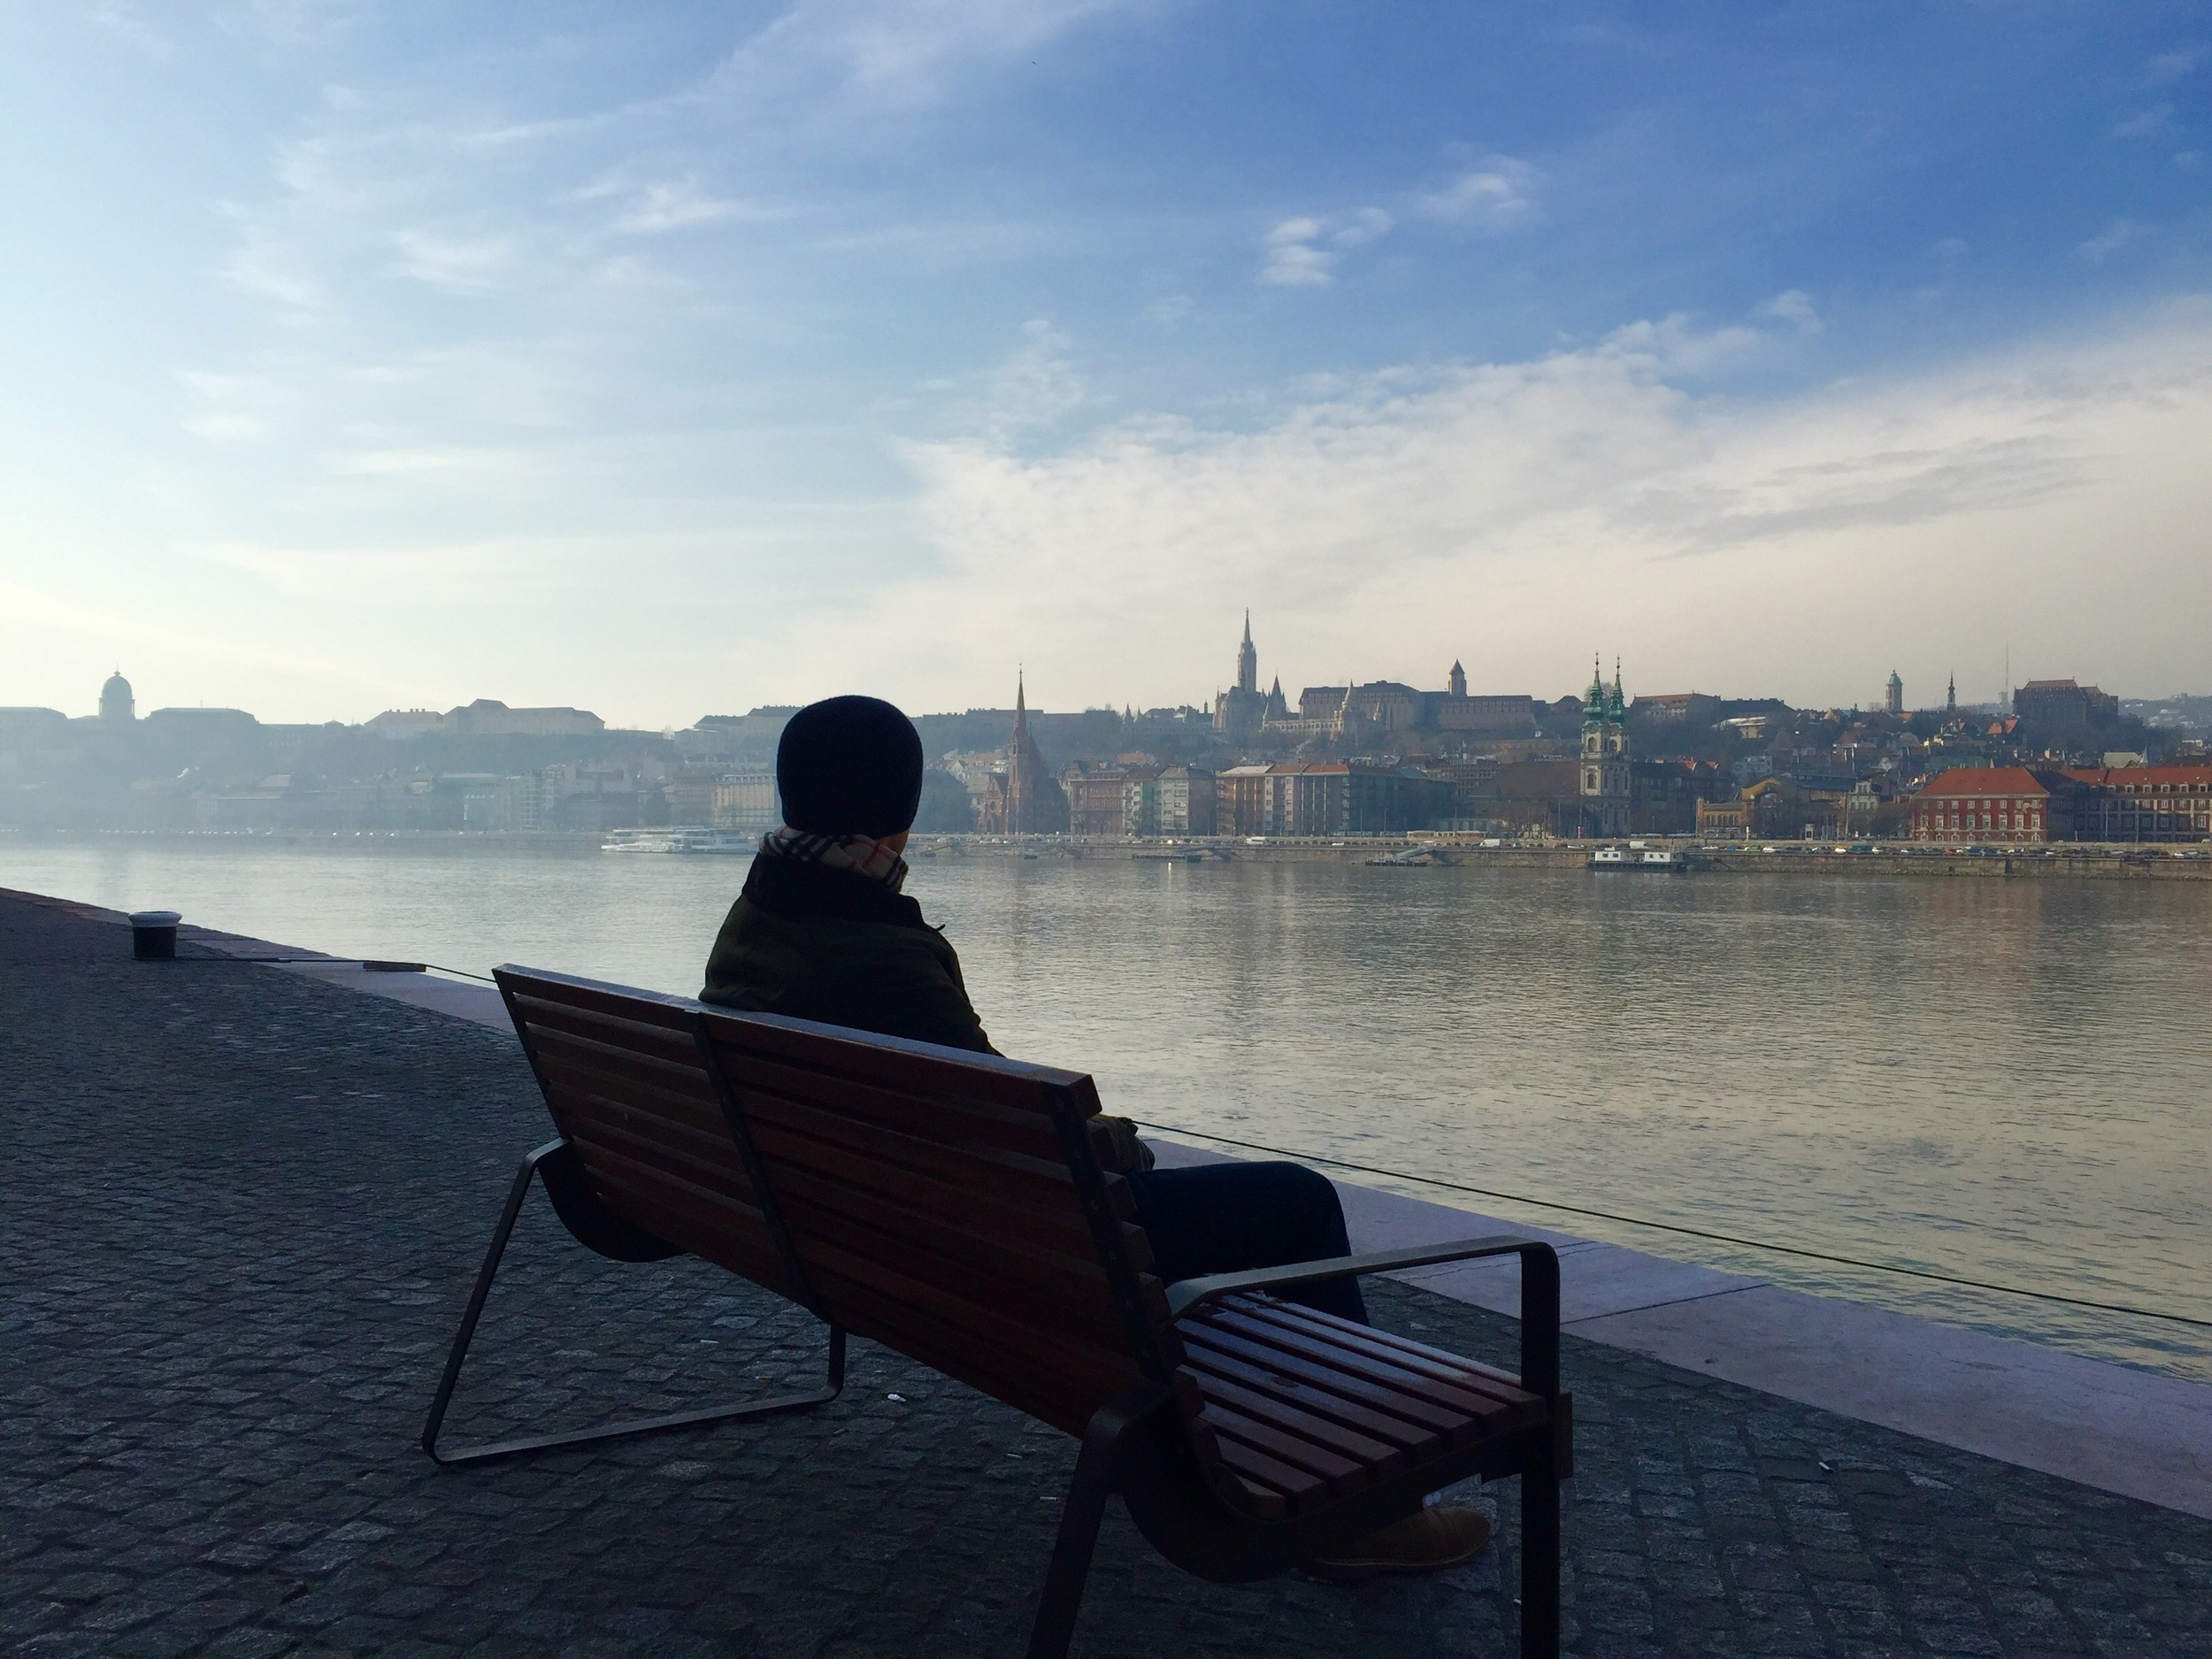 Sitting by the Danube, Budapest, Hungary